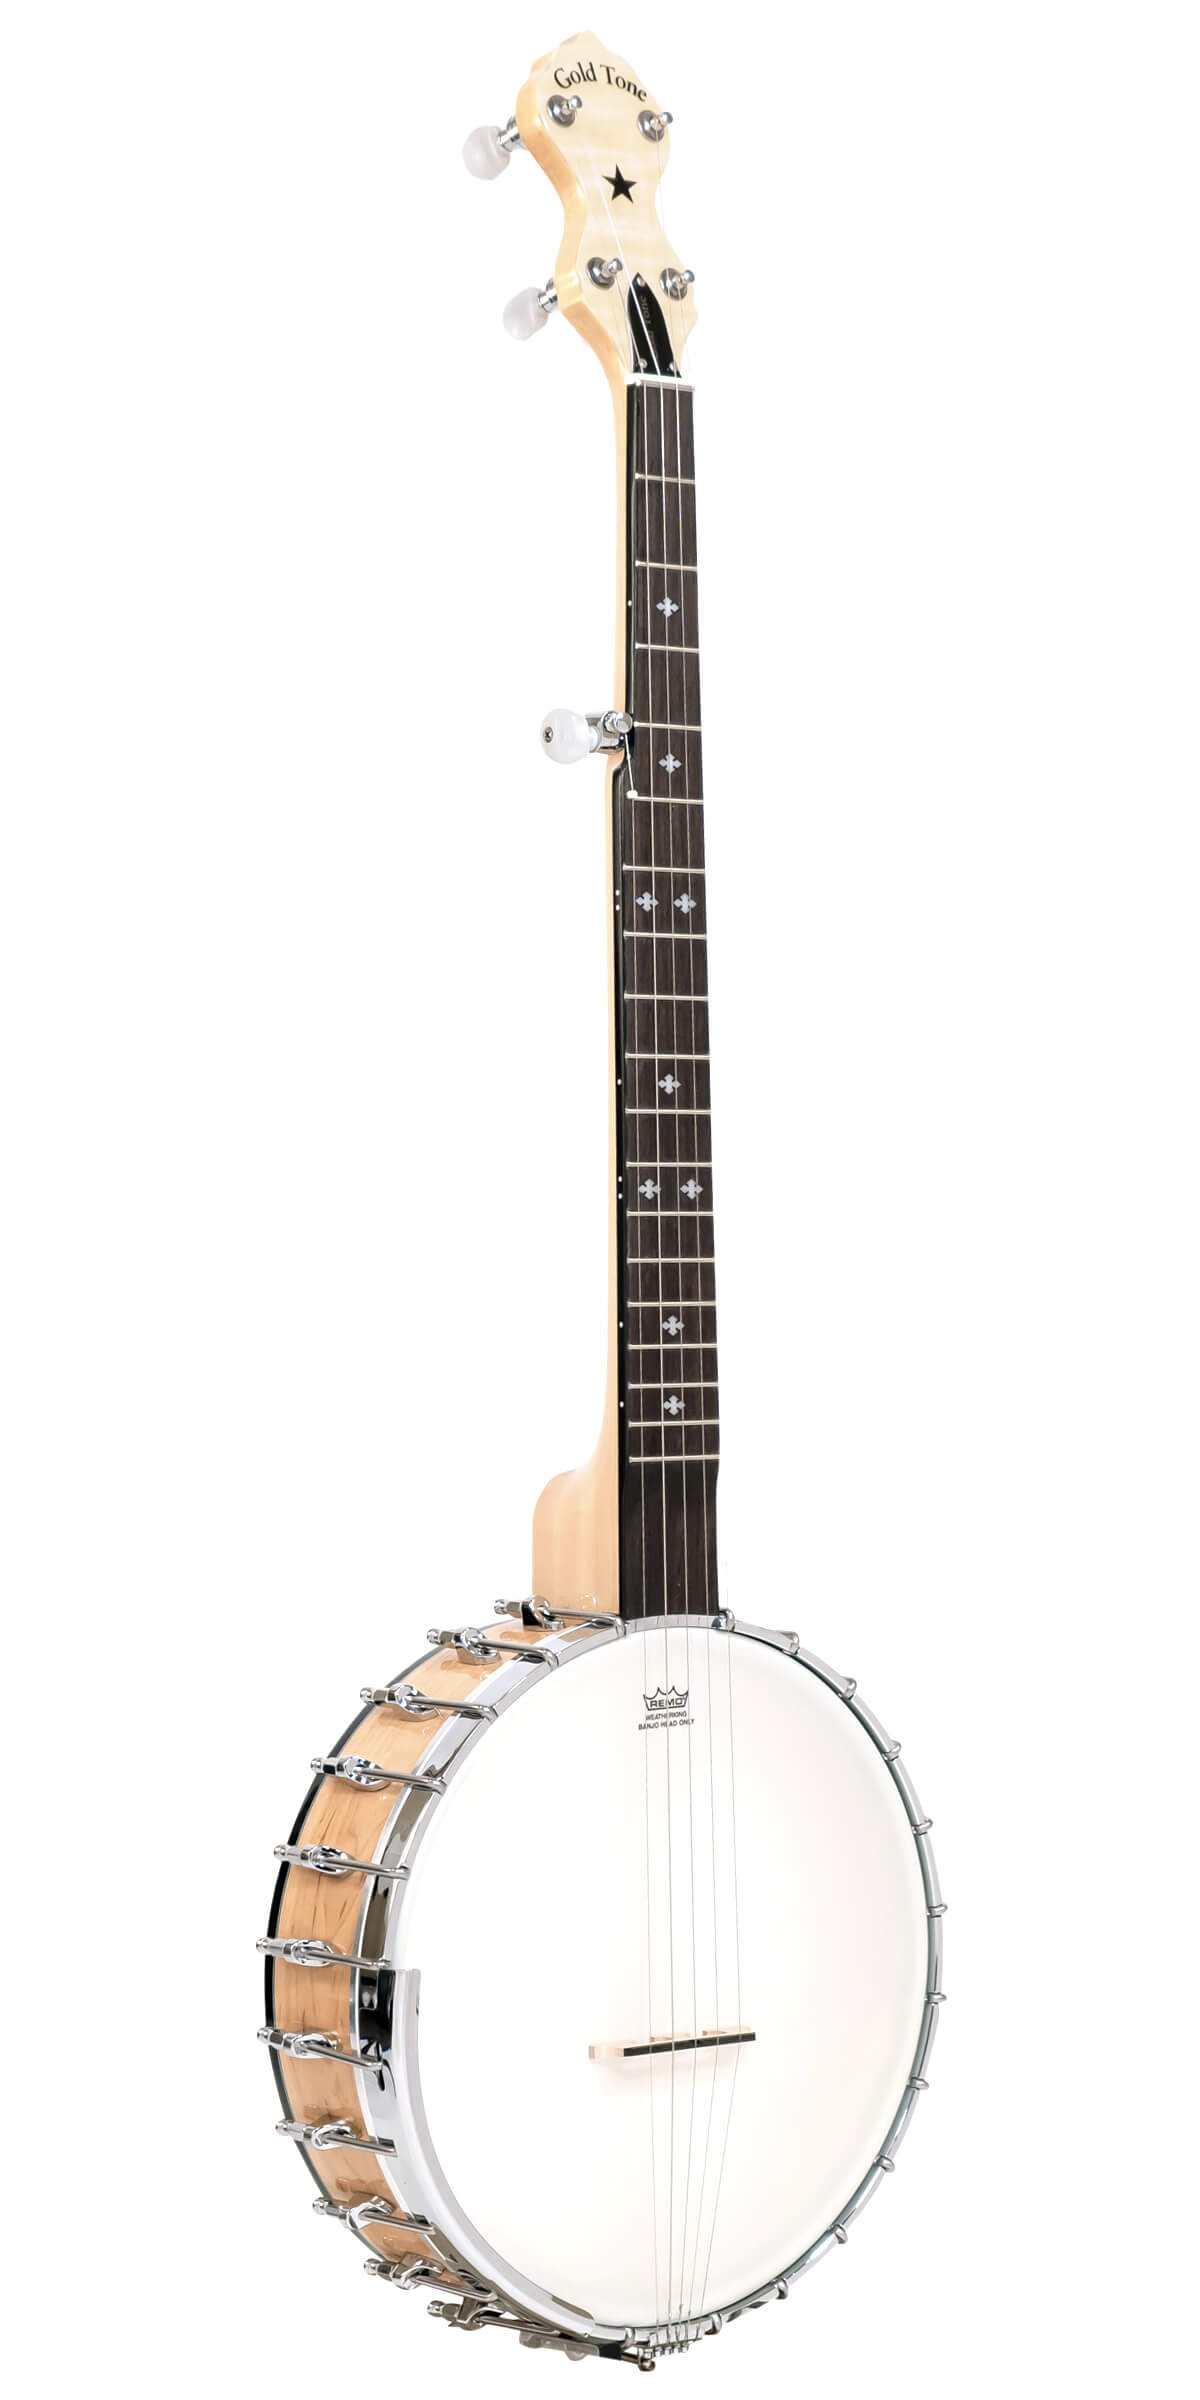 MM-150: Maple Mountain Banjo